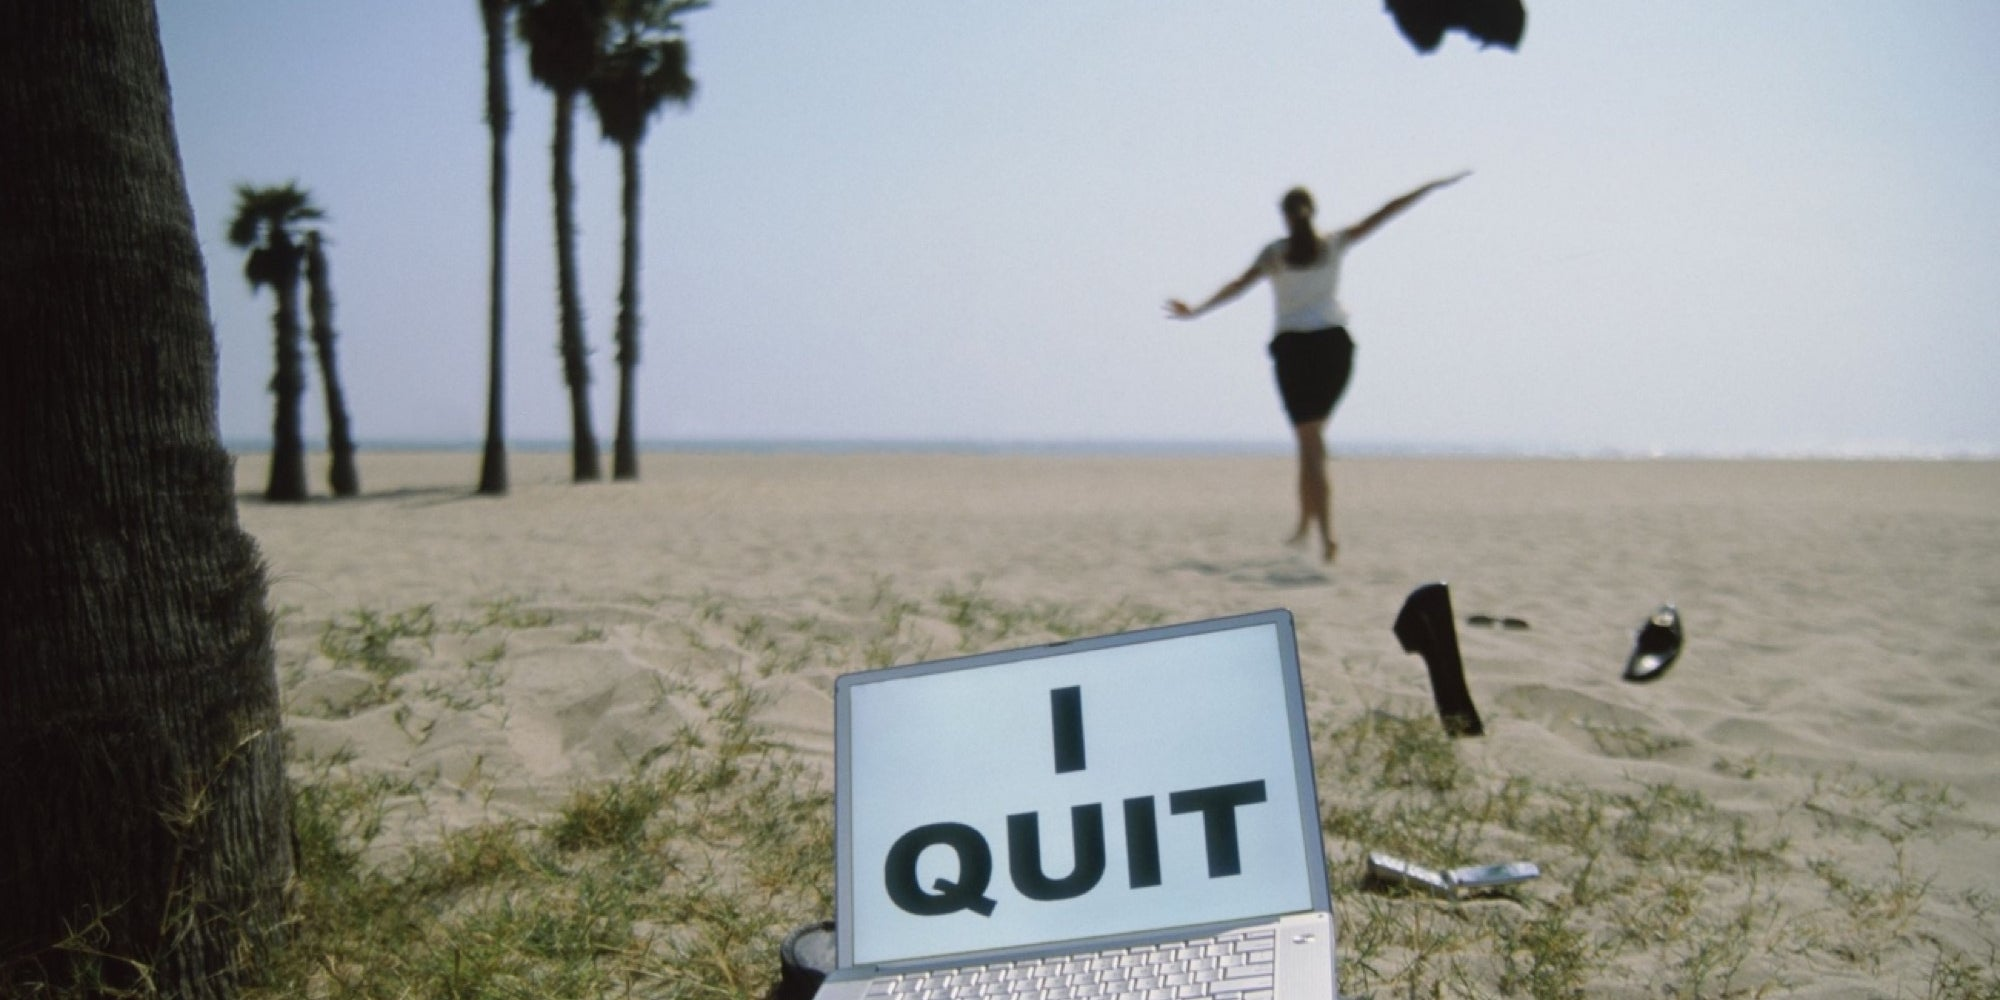 10 Outrageous Ways People Have Quit Their Jobs